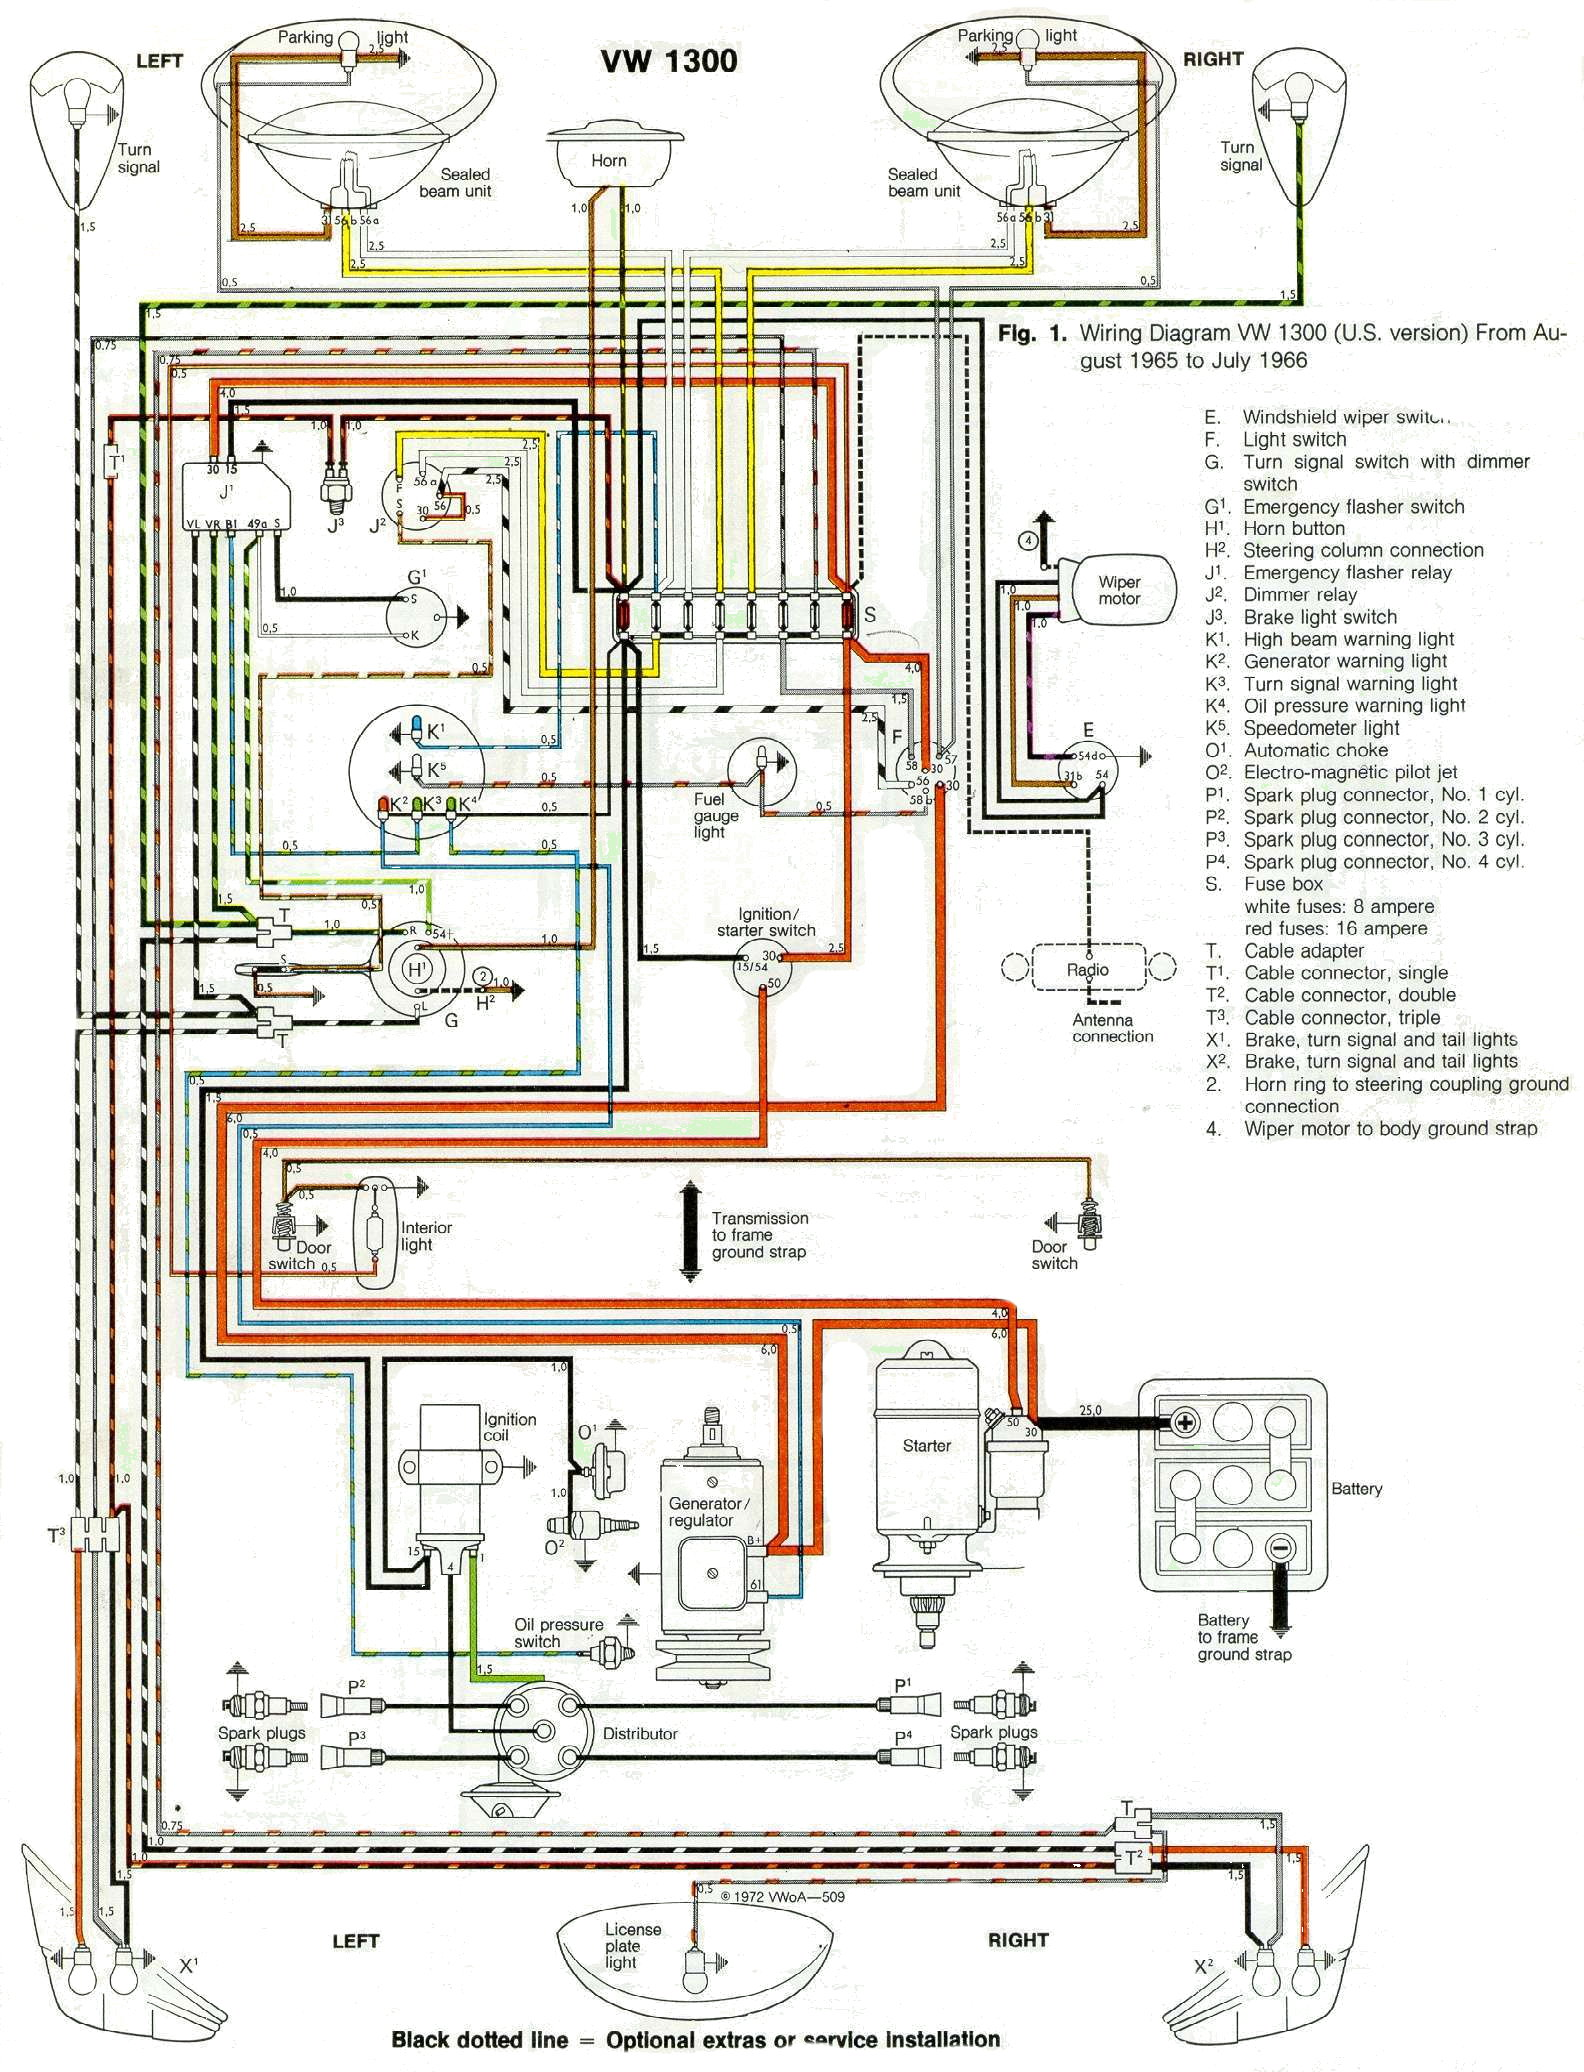 1966 Wiring 1966 wiring diagram vw beetle wiring diagram at cos-gaming.co